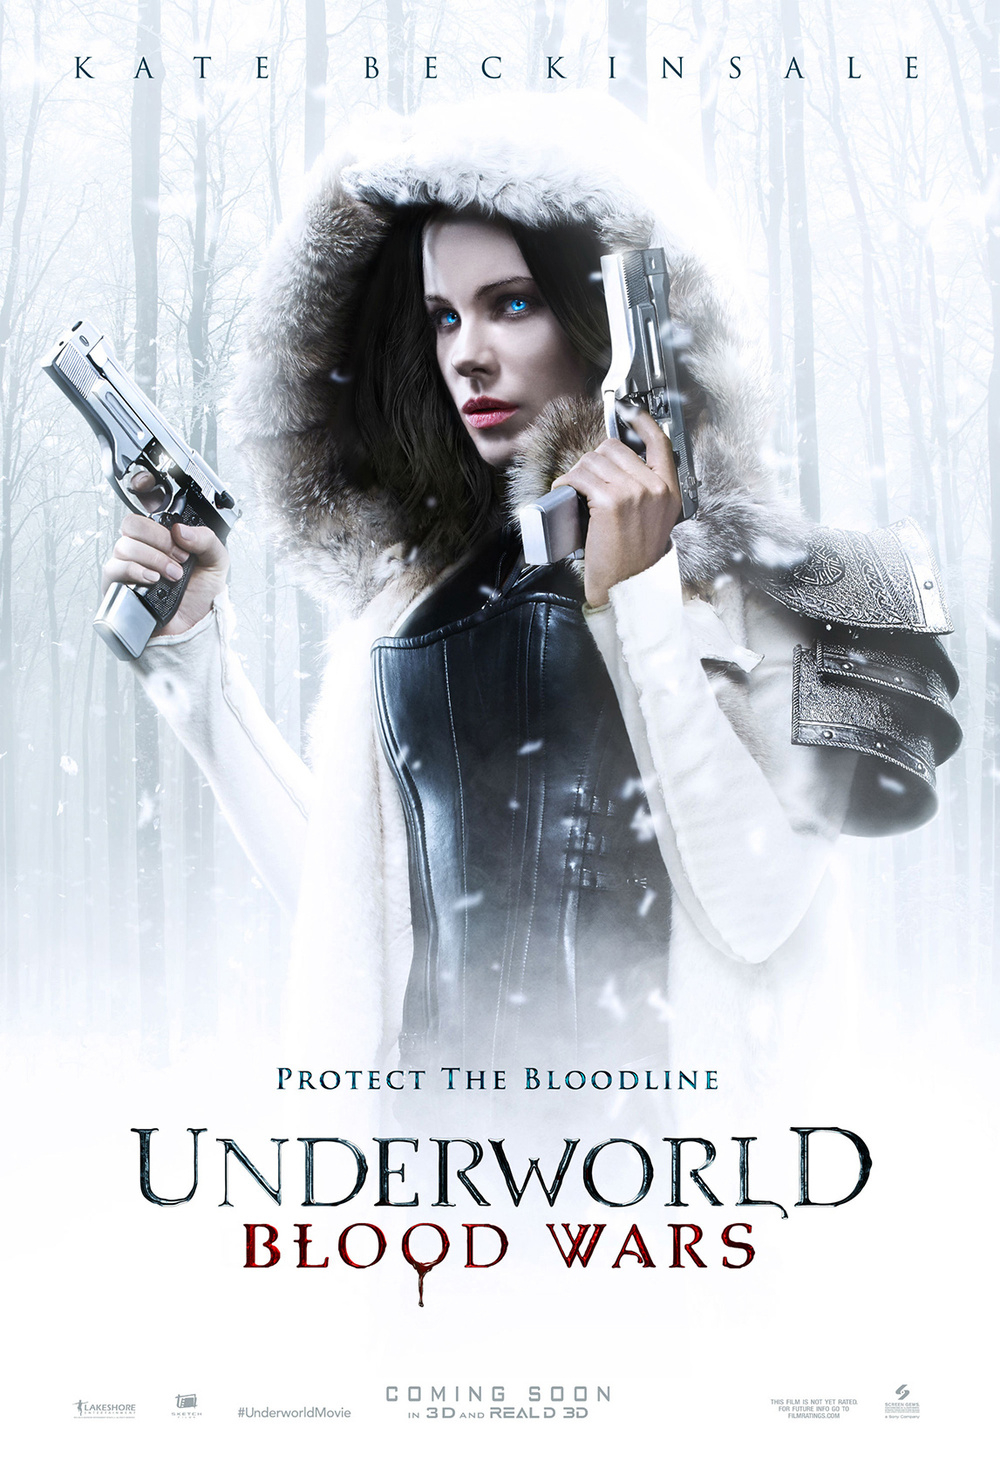 KateBeckinsale_Underworld_002.jpg